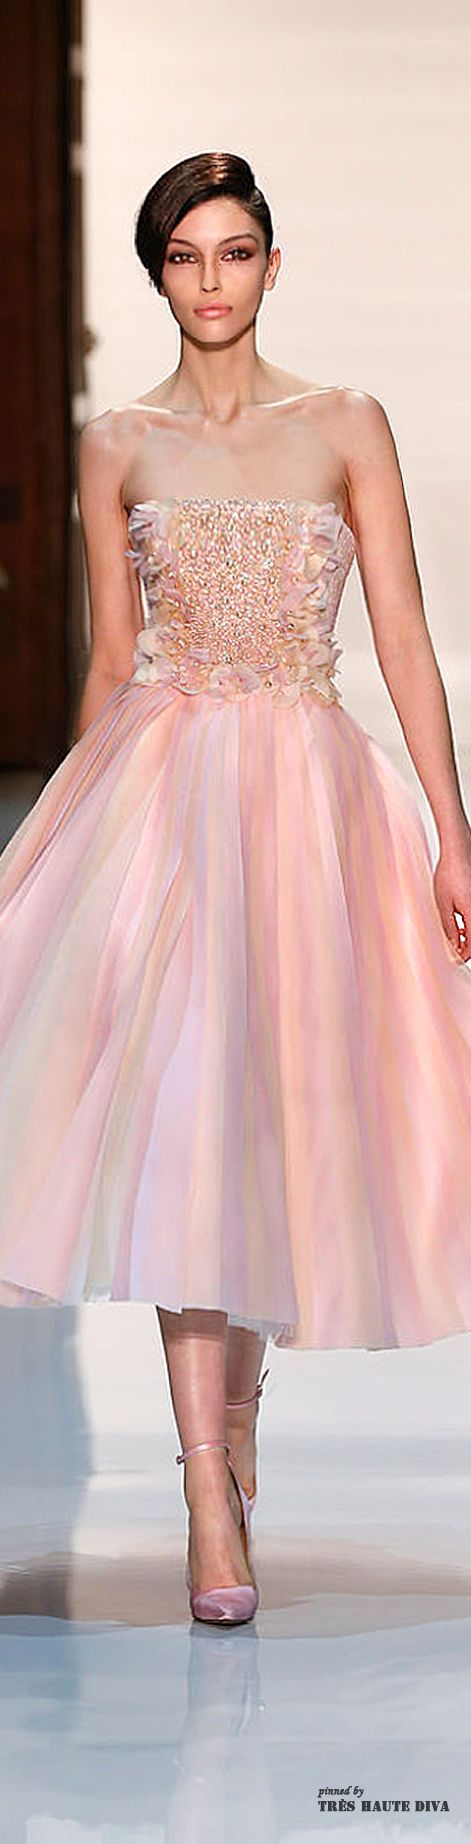 153 best ♥All the Pink ♥ images on Pinterest | Dream dress ...